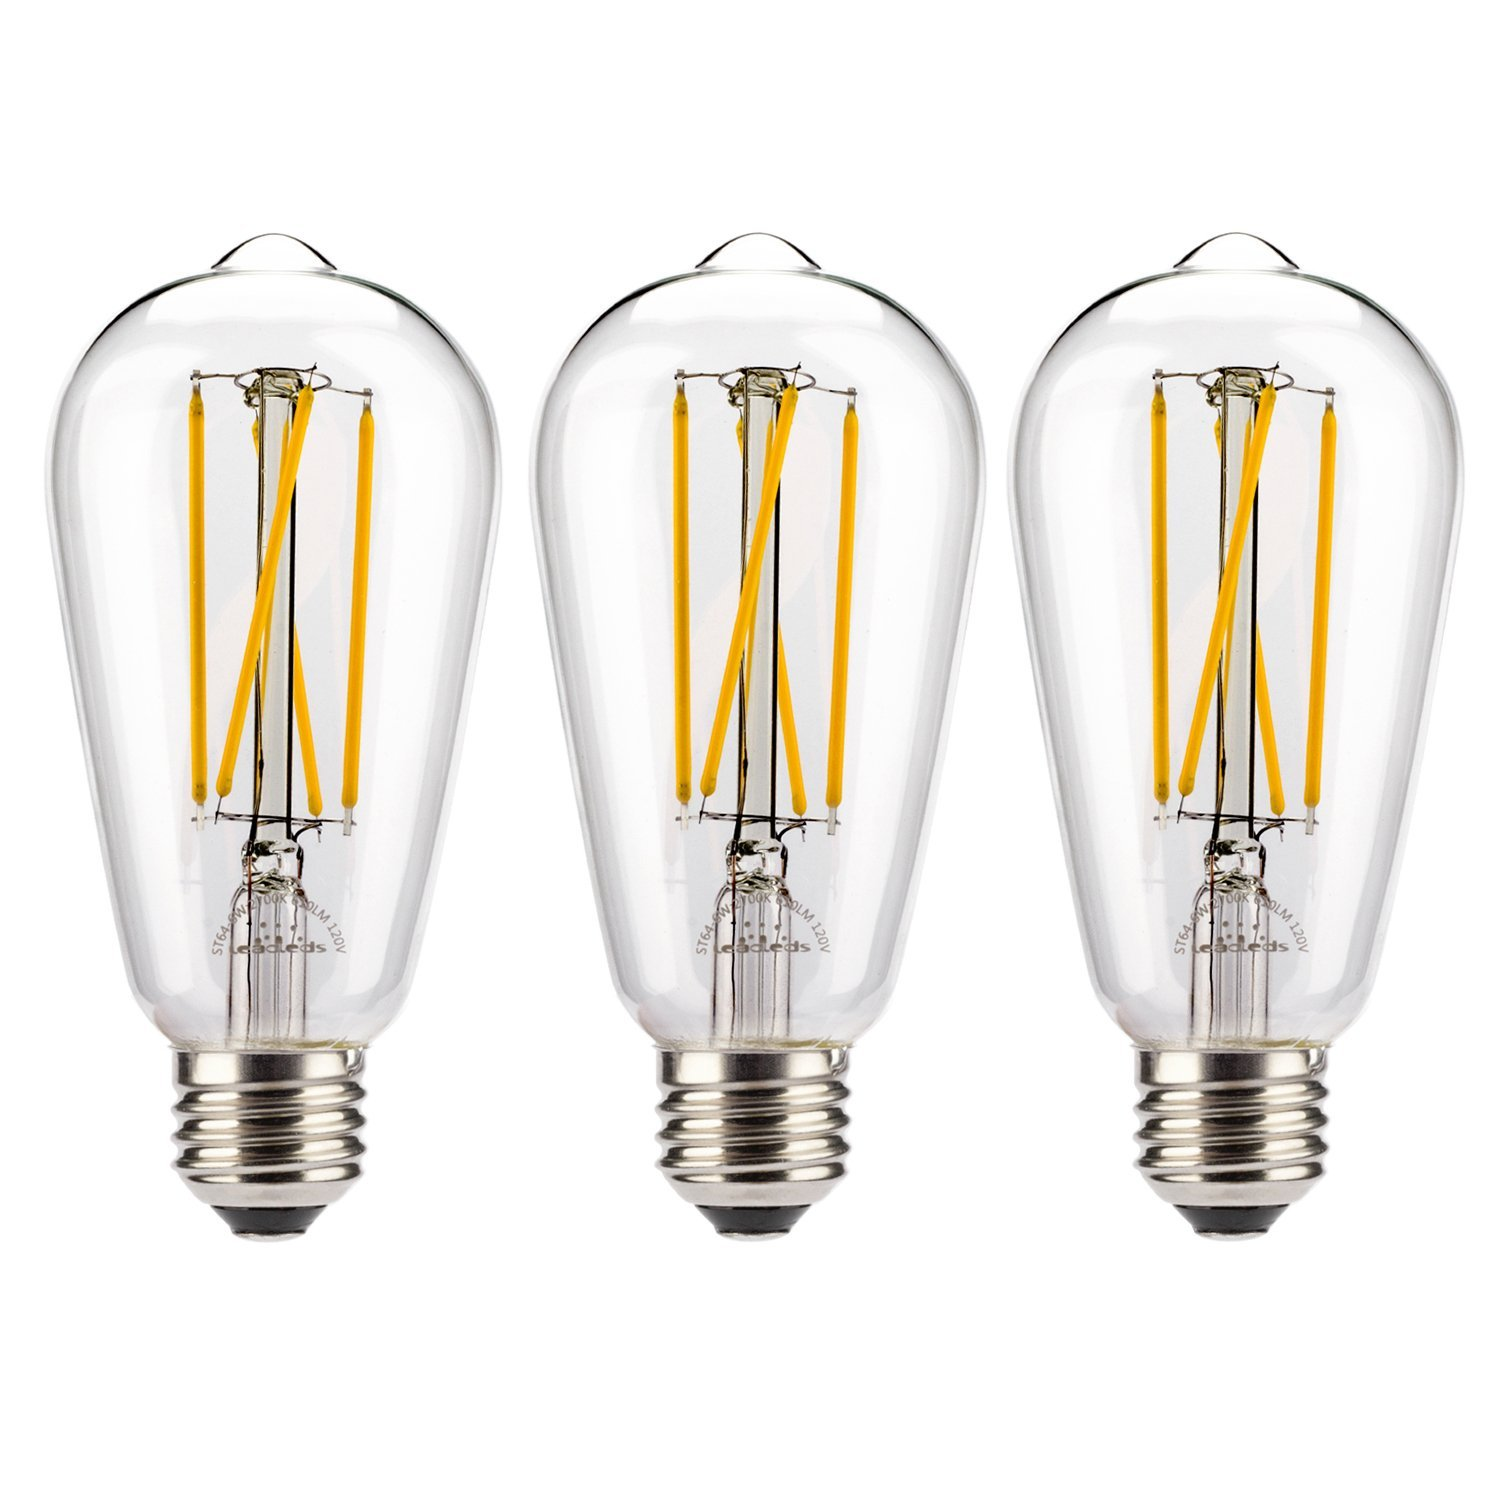 3-Pack Beautiful LED Filament Light, 60 watt Incandescent Bulb Replacement, E26 Medium Base ST19 Vintage Decorative LED Bulbs Dimmable Warm White by Leadleds